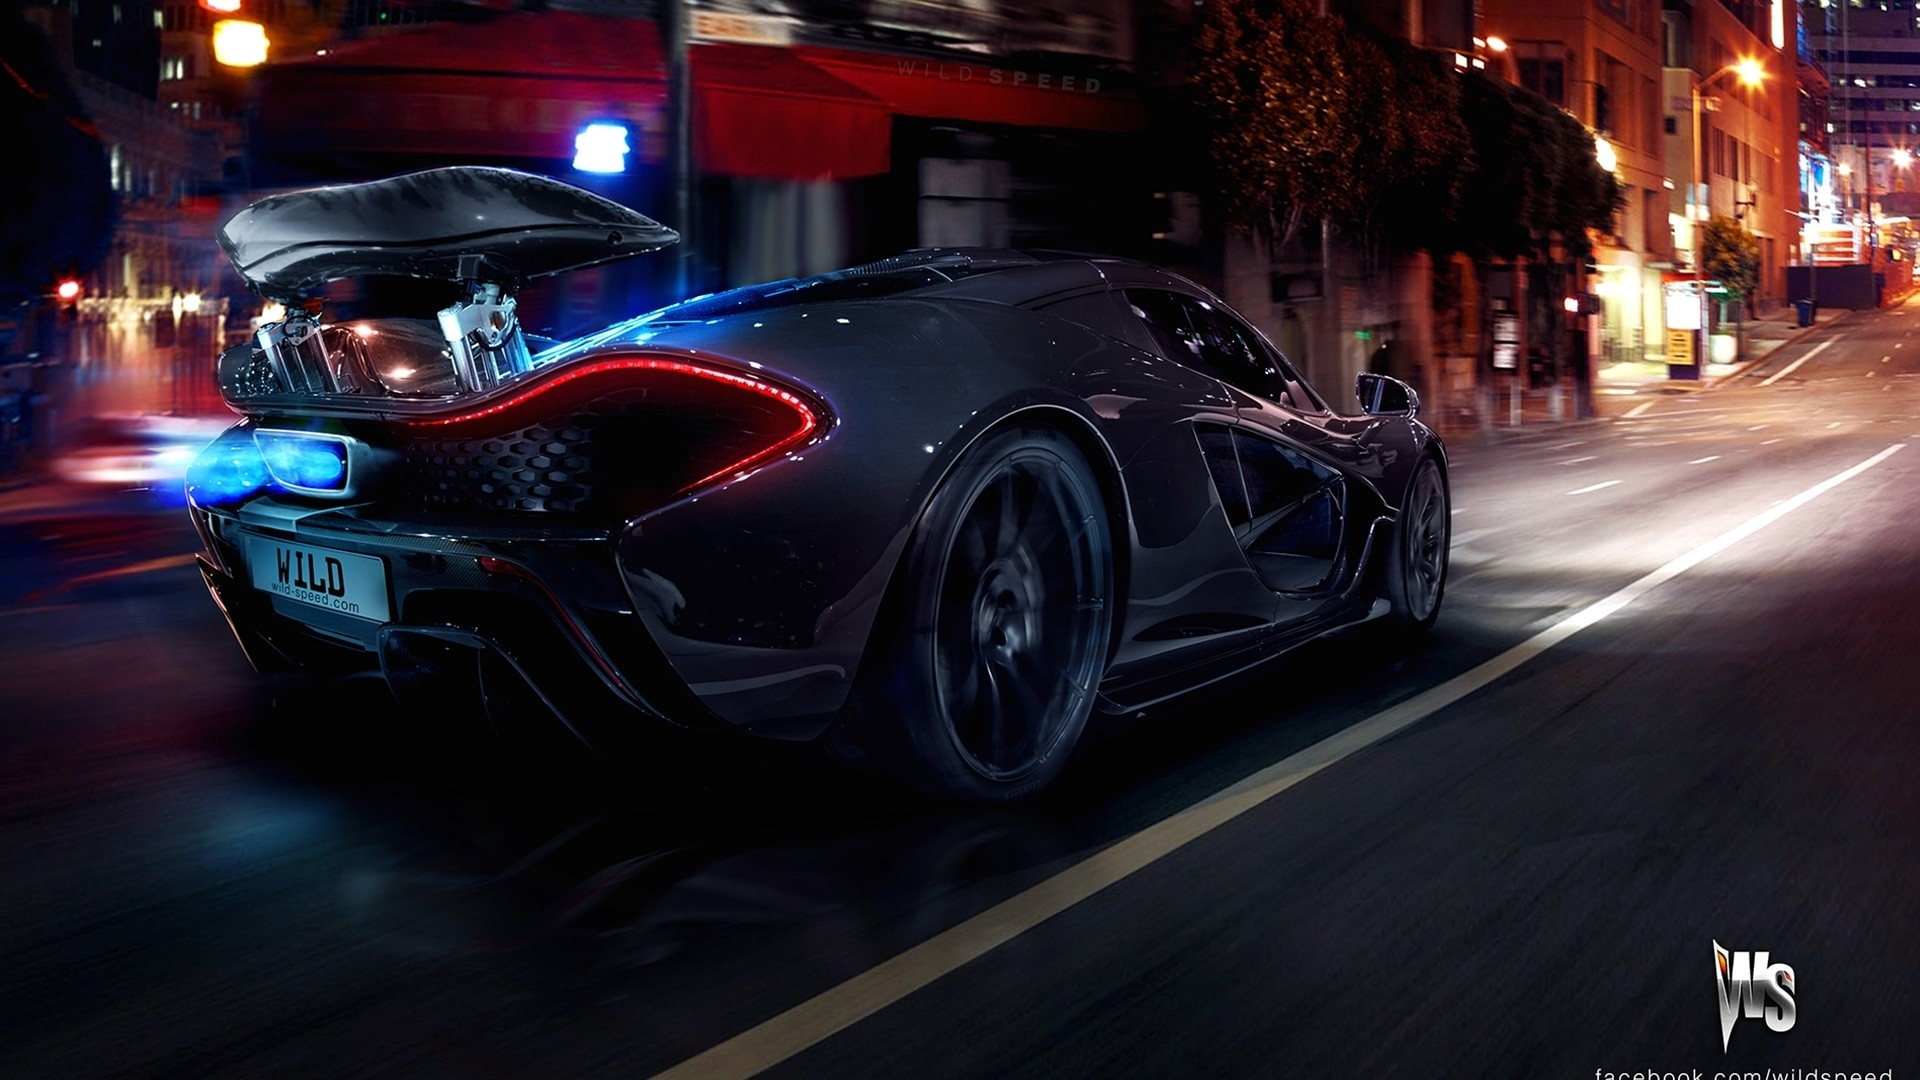 McLaren P1 HD Wallpaper Background Image 1920x1080